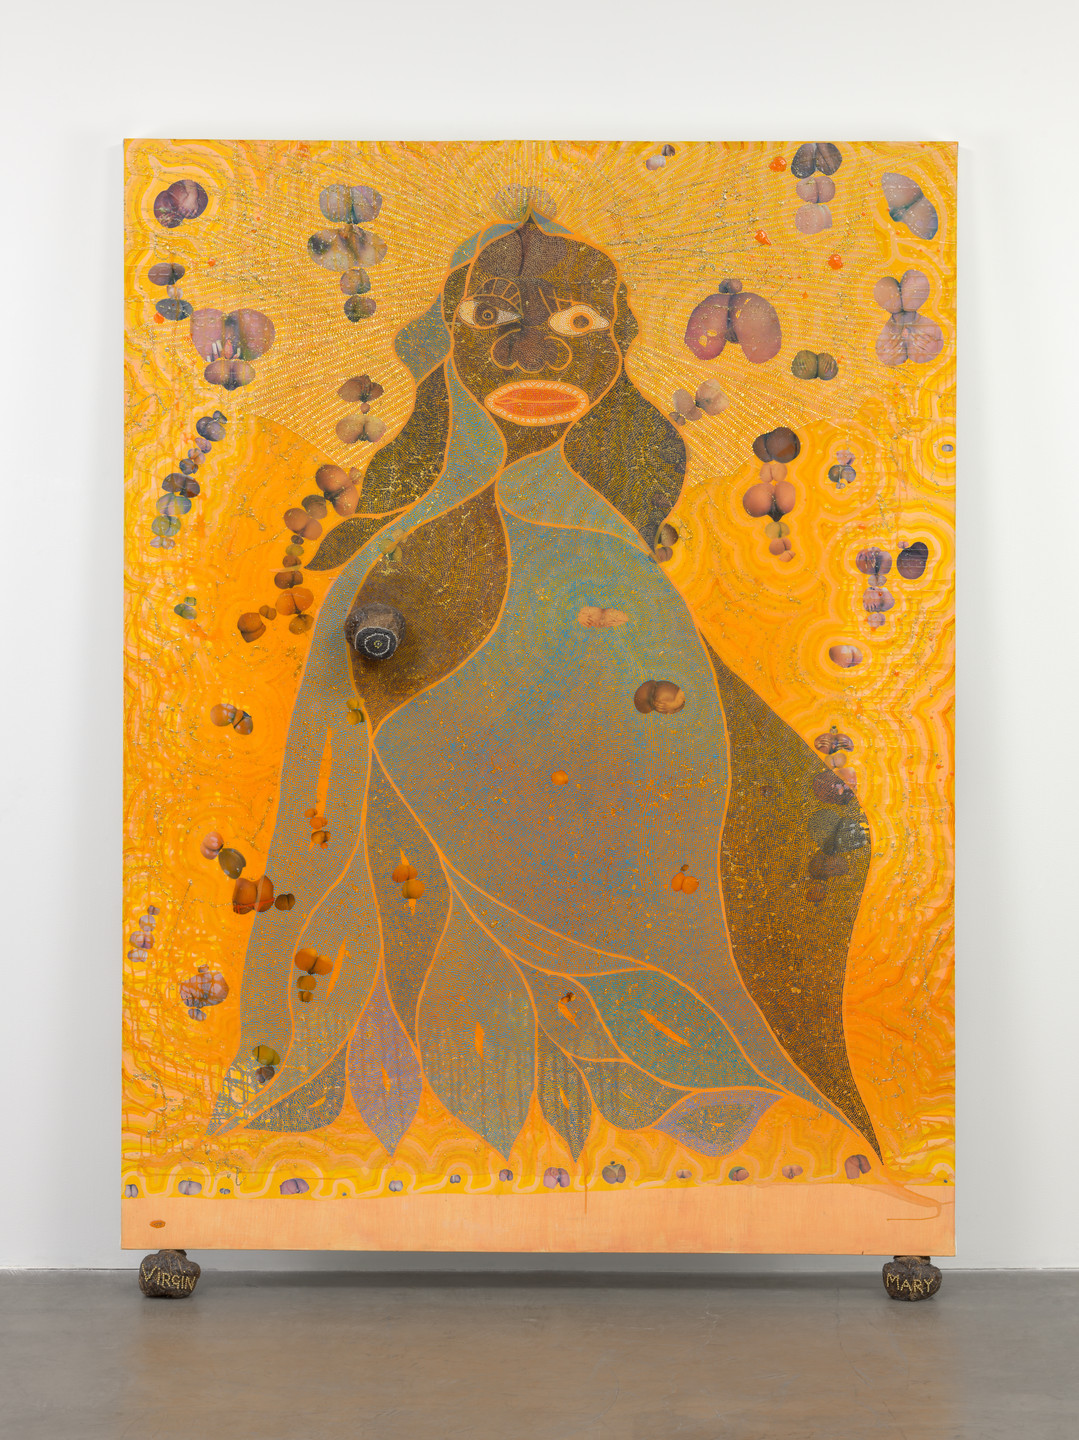 Chris Ofili. The Holy Virgin Mary. 1996